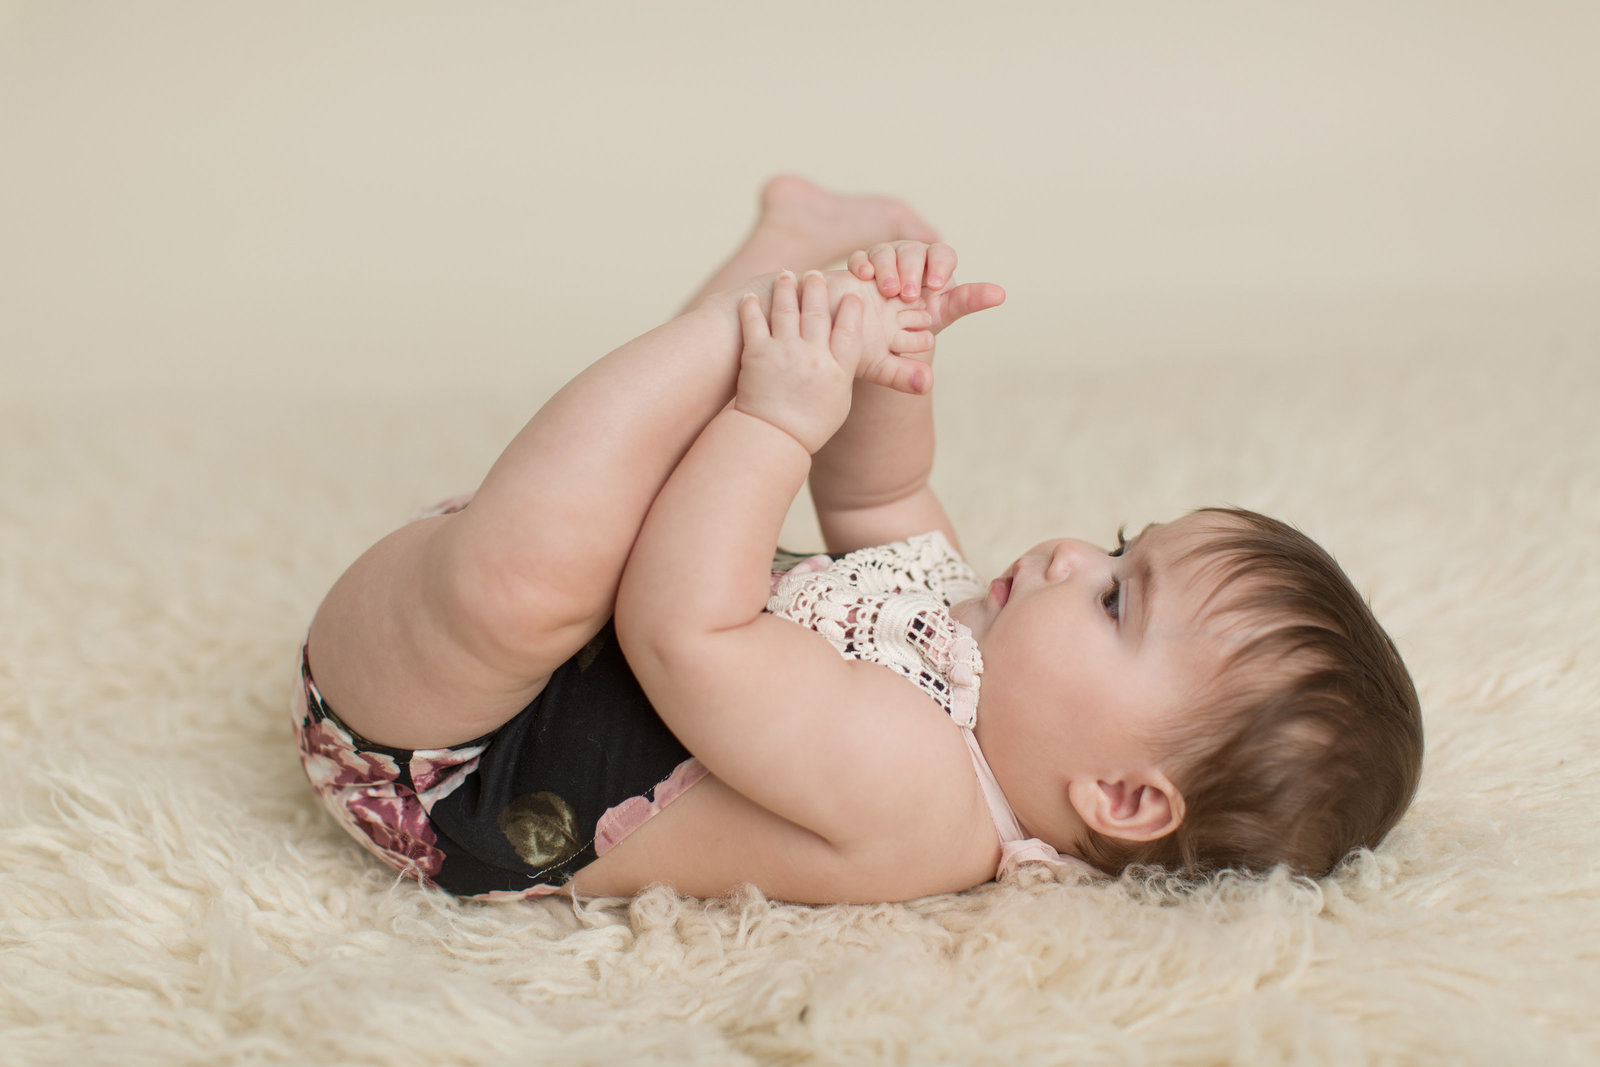 girl plays with little toes laying on fur backdrop